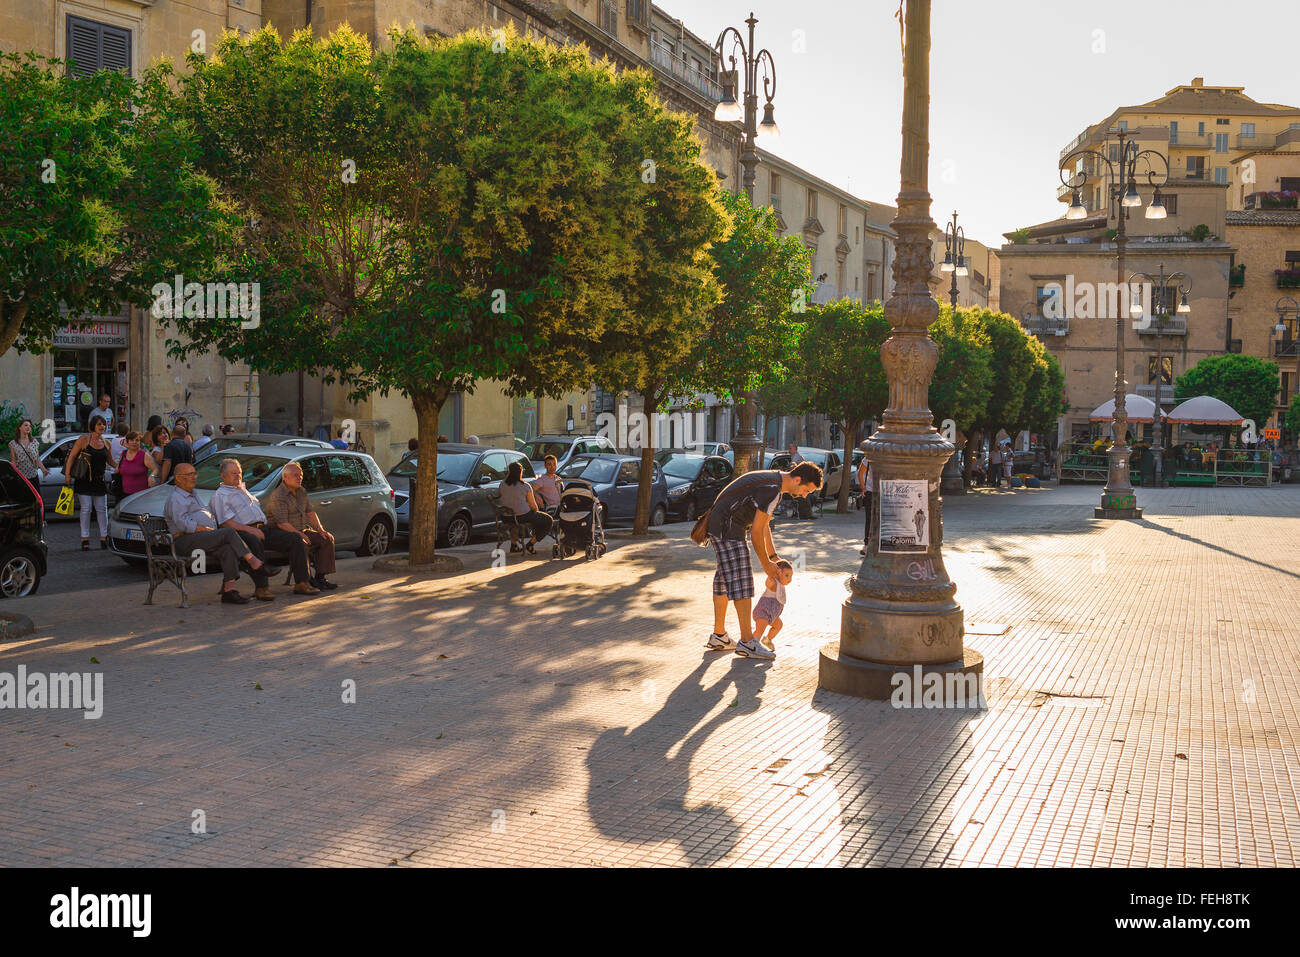 Father child Italy, at the end of a summer day in the Piazza Vittorio Emanuele in Enna, Sicily, a young father helps - Stock Image